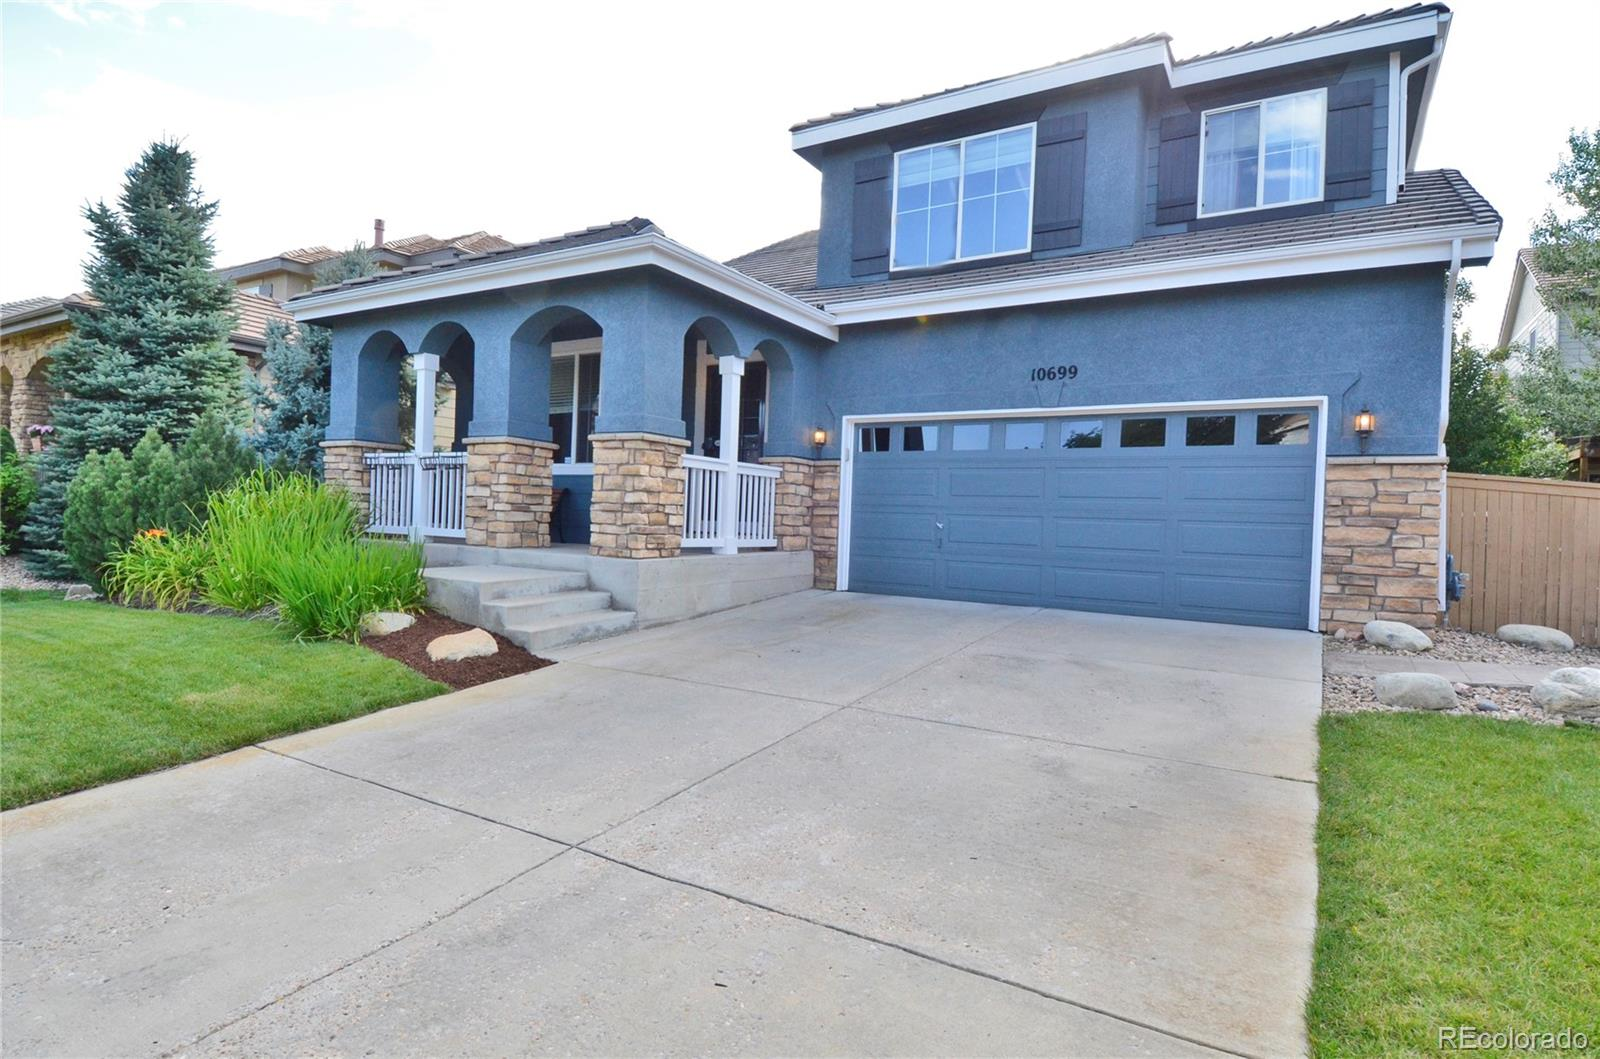 MLS# 2831572 - 2 - 10699 Wynspire Way, Highlands Ranch, CO 80130